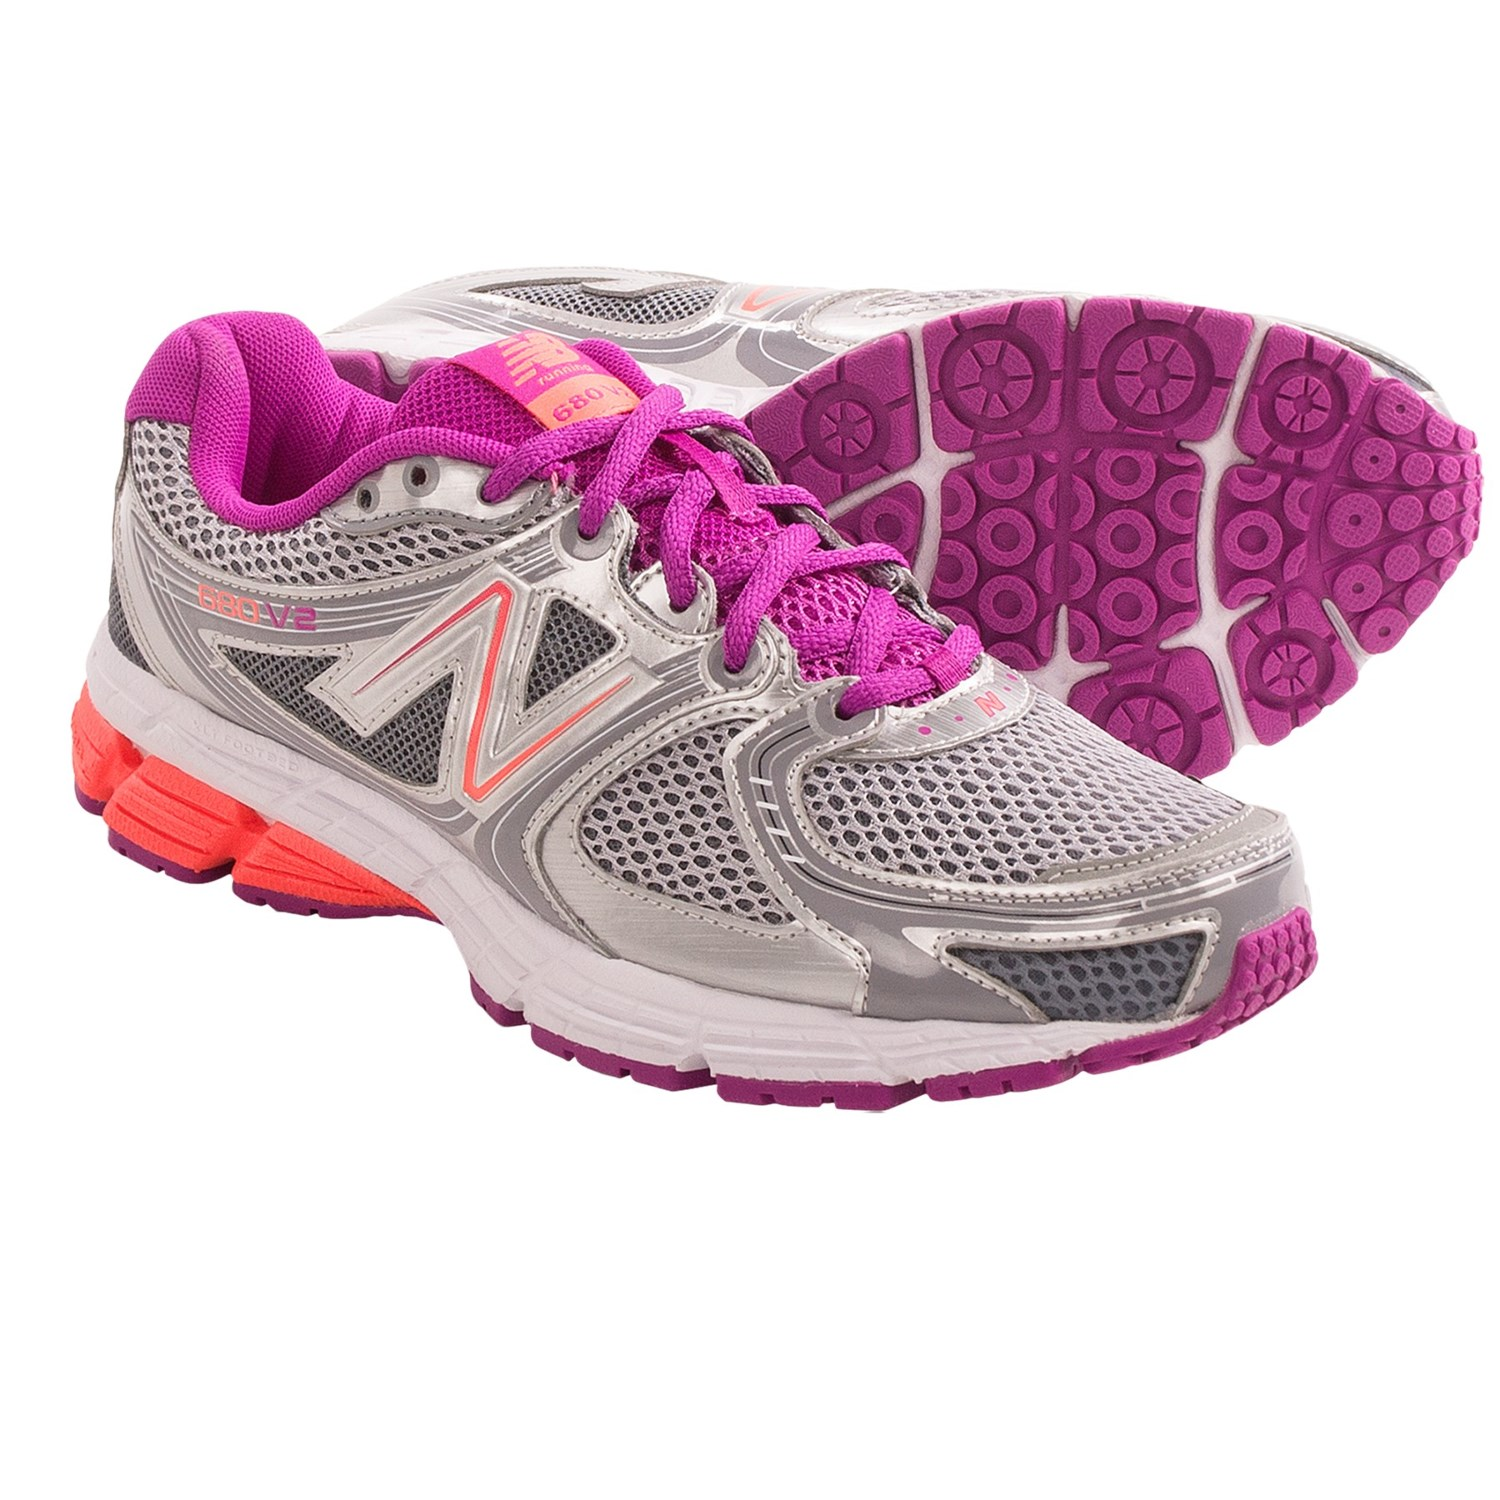 women-new-balance-wt1010v2-minimus-trail-running-shoes-video-1.jpg